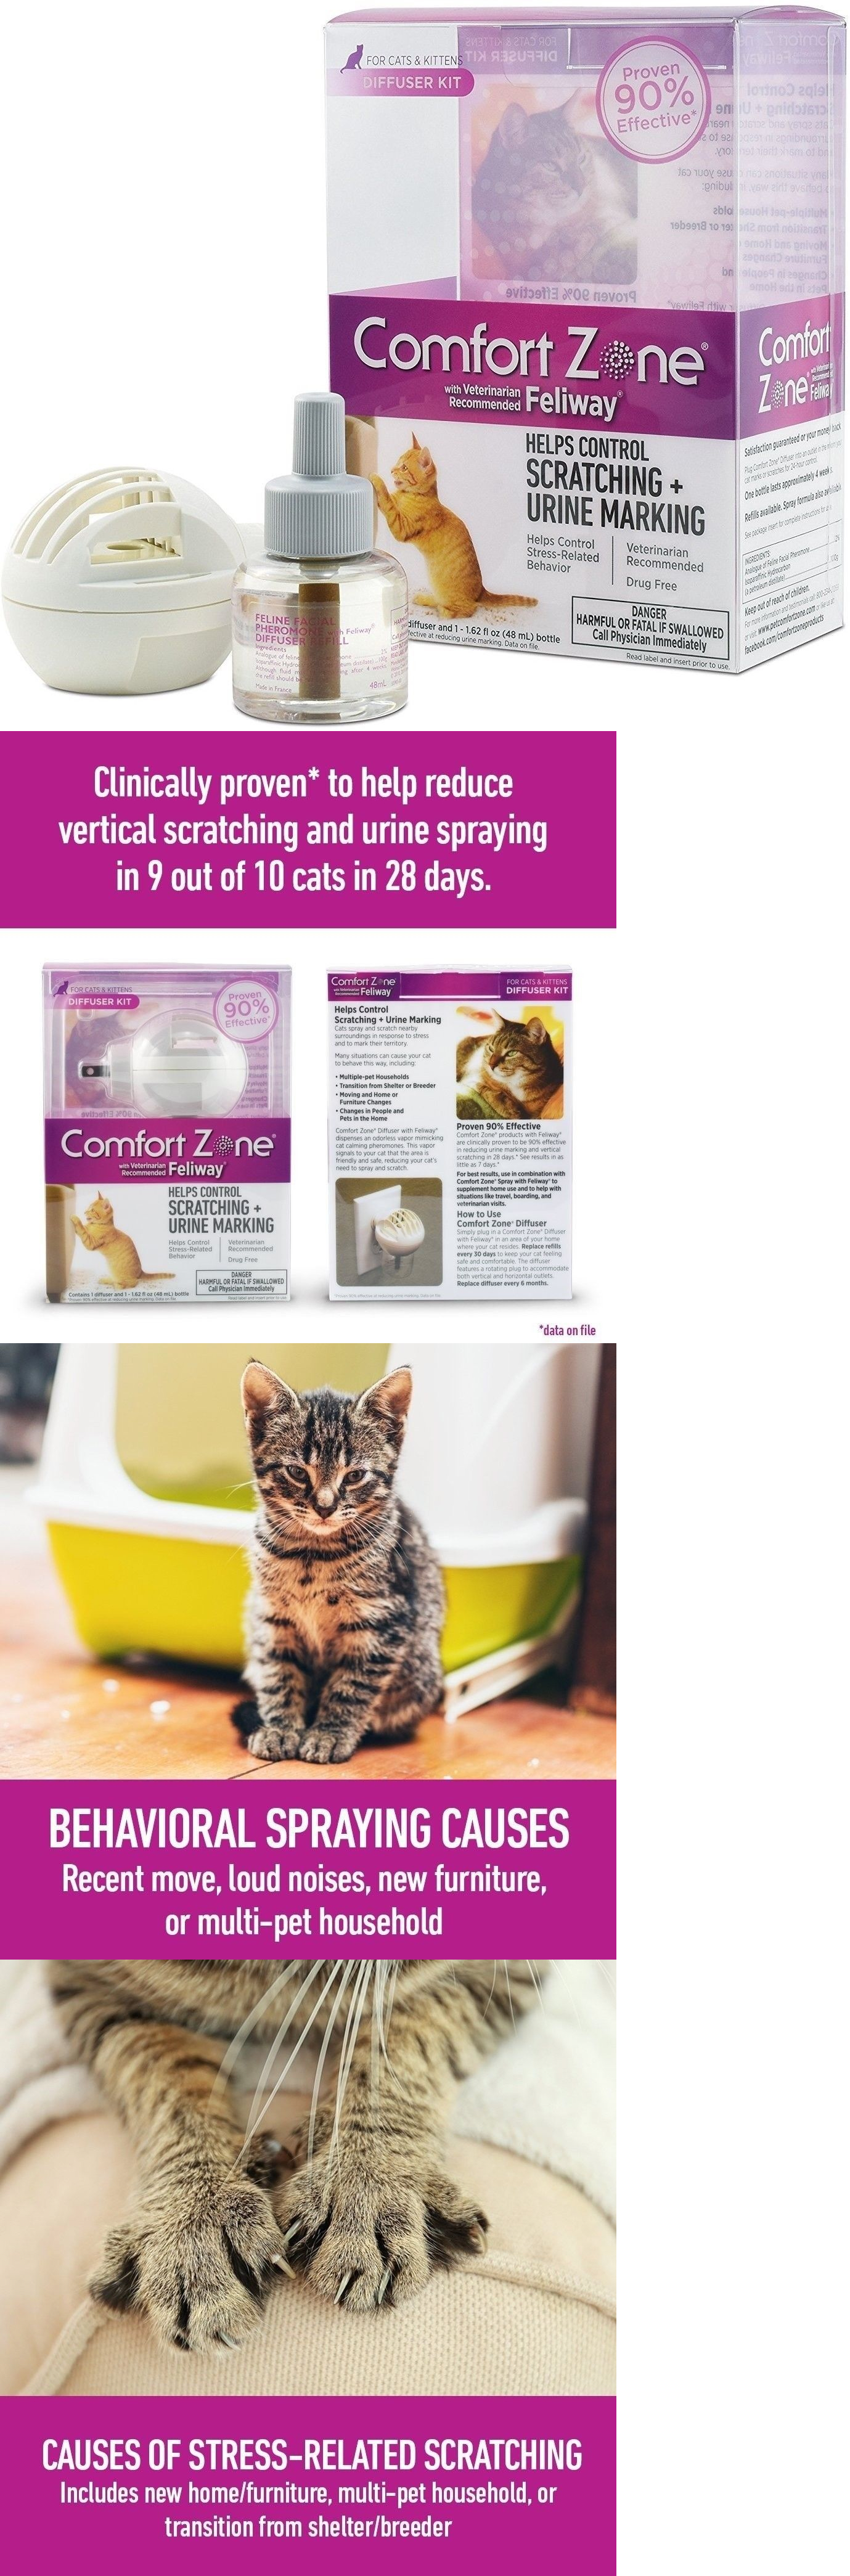 dp feliway multicat comforter com starter refill zone kit amazon health comfort animal diffuser ceva